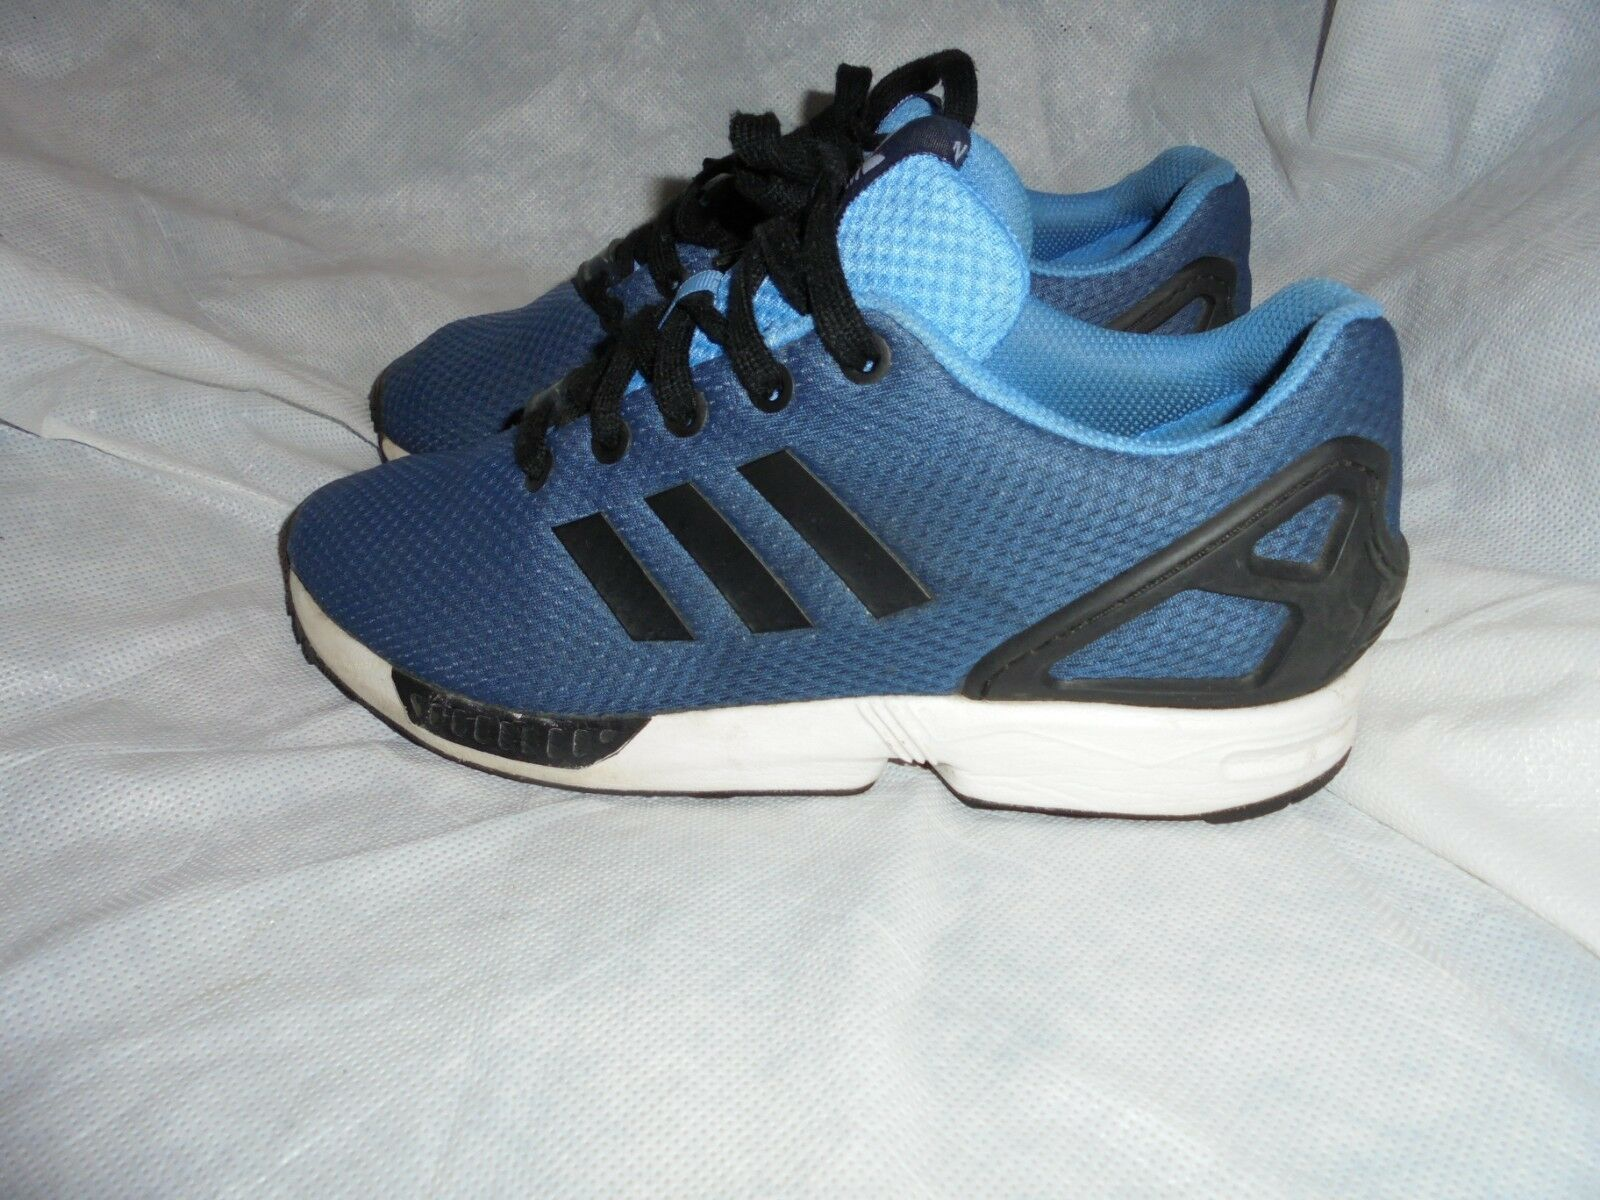 ADIDAS ORTHOLITE WOMEN Blau TEXTILE LACE UP TRAINERS SIZE UK 5 EU 38 US 5.5 VGC